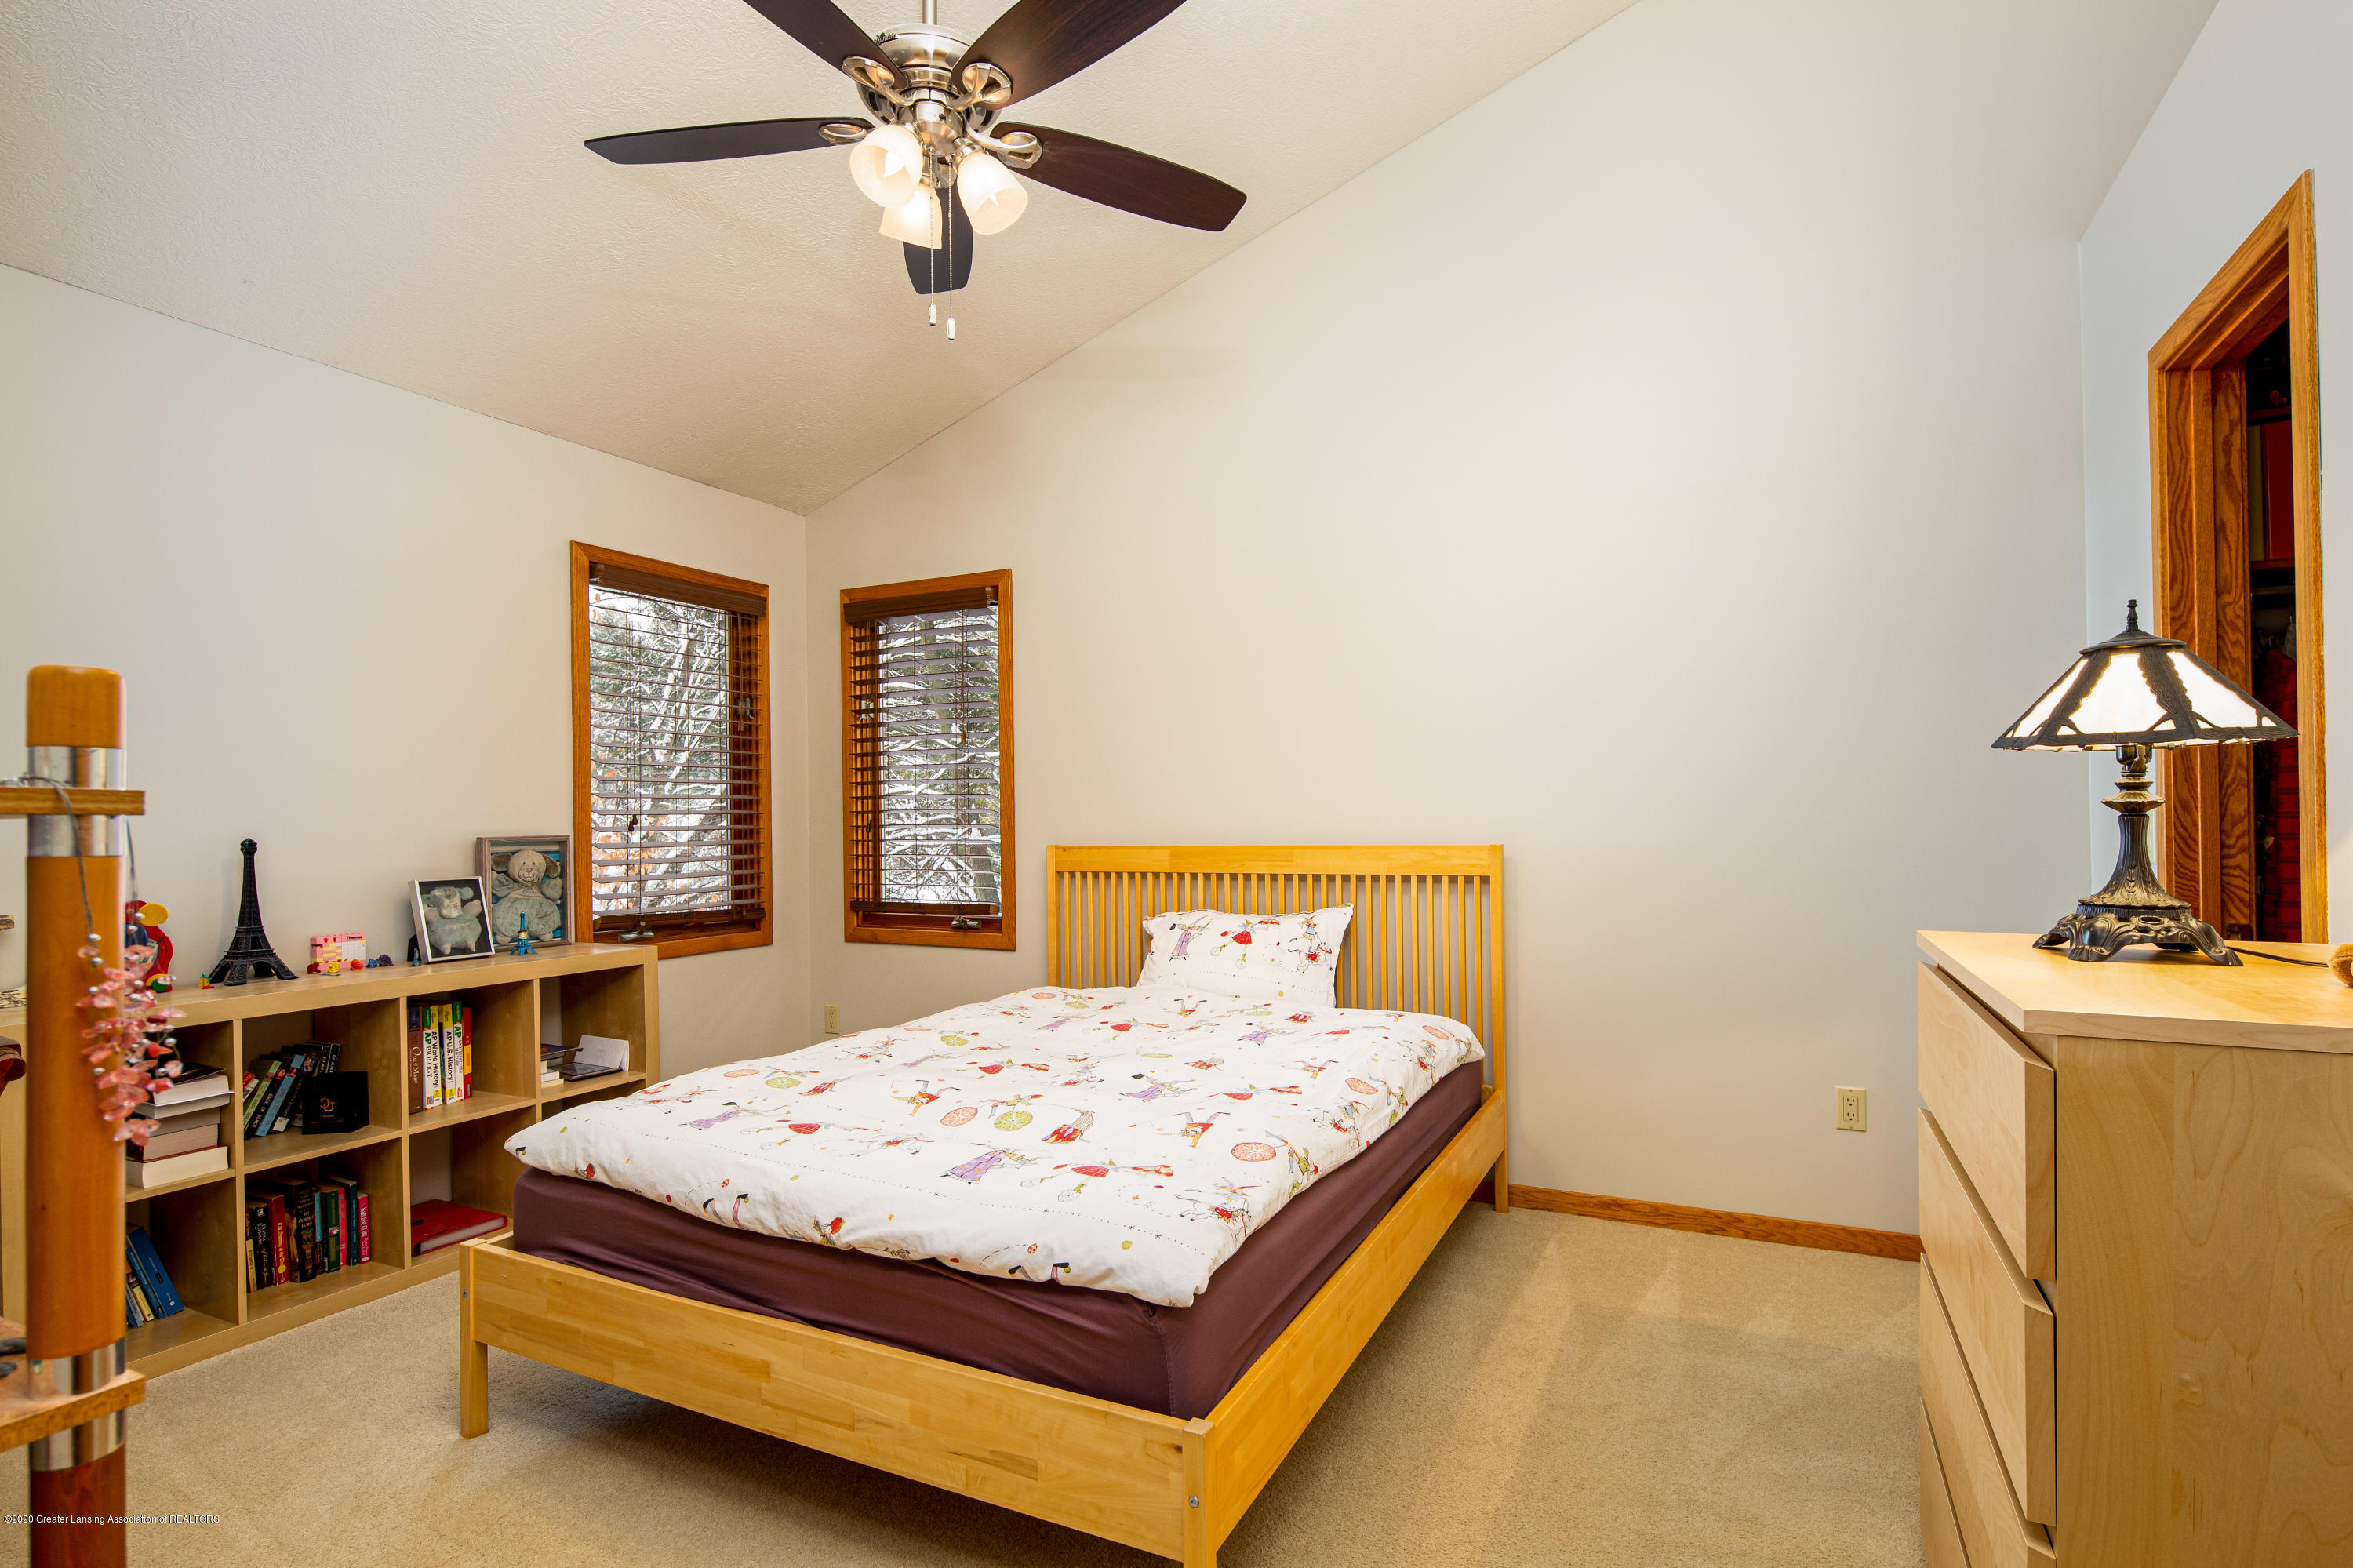 4332 Aztec Way - 20200209-942A9885-Edit - 36